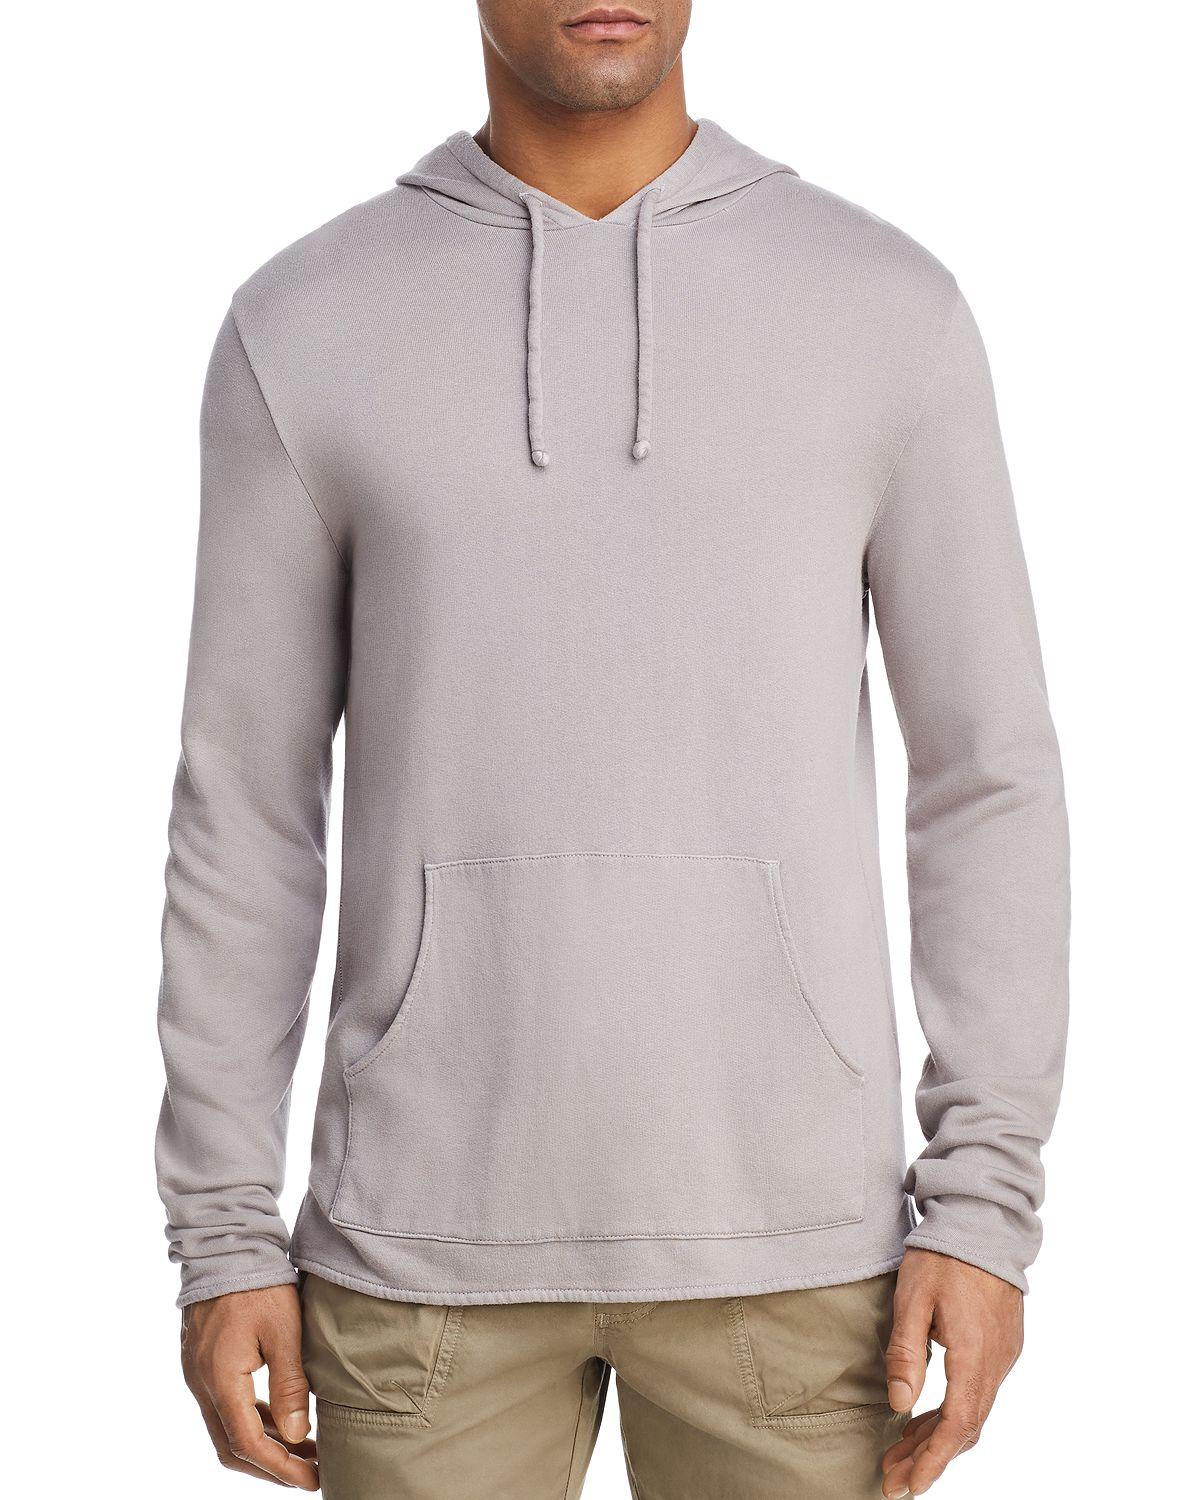 M Singer Hooded Sweatshirt